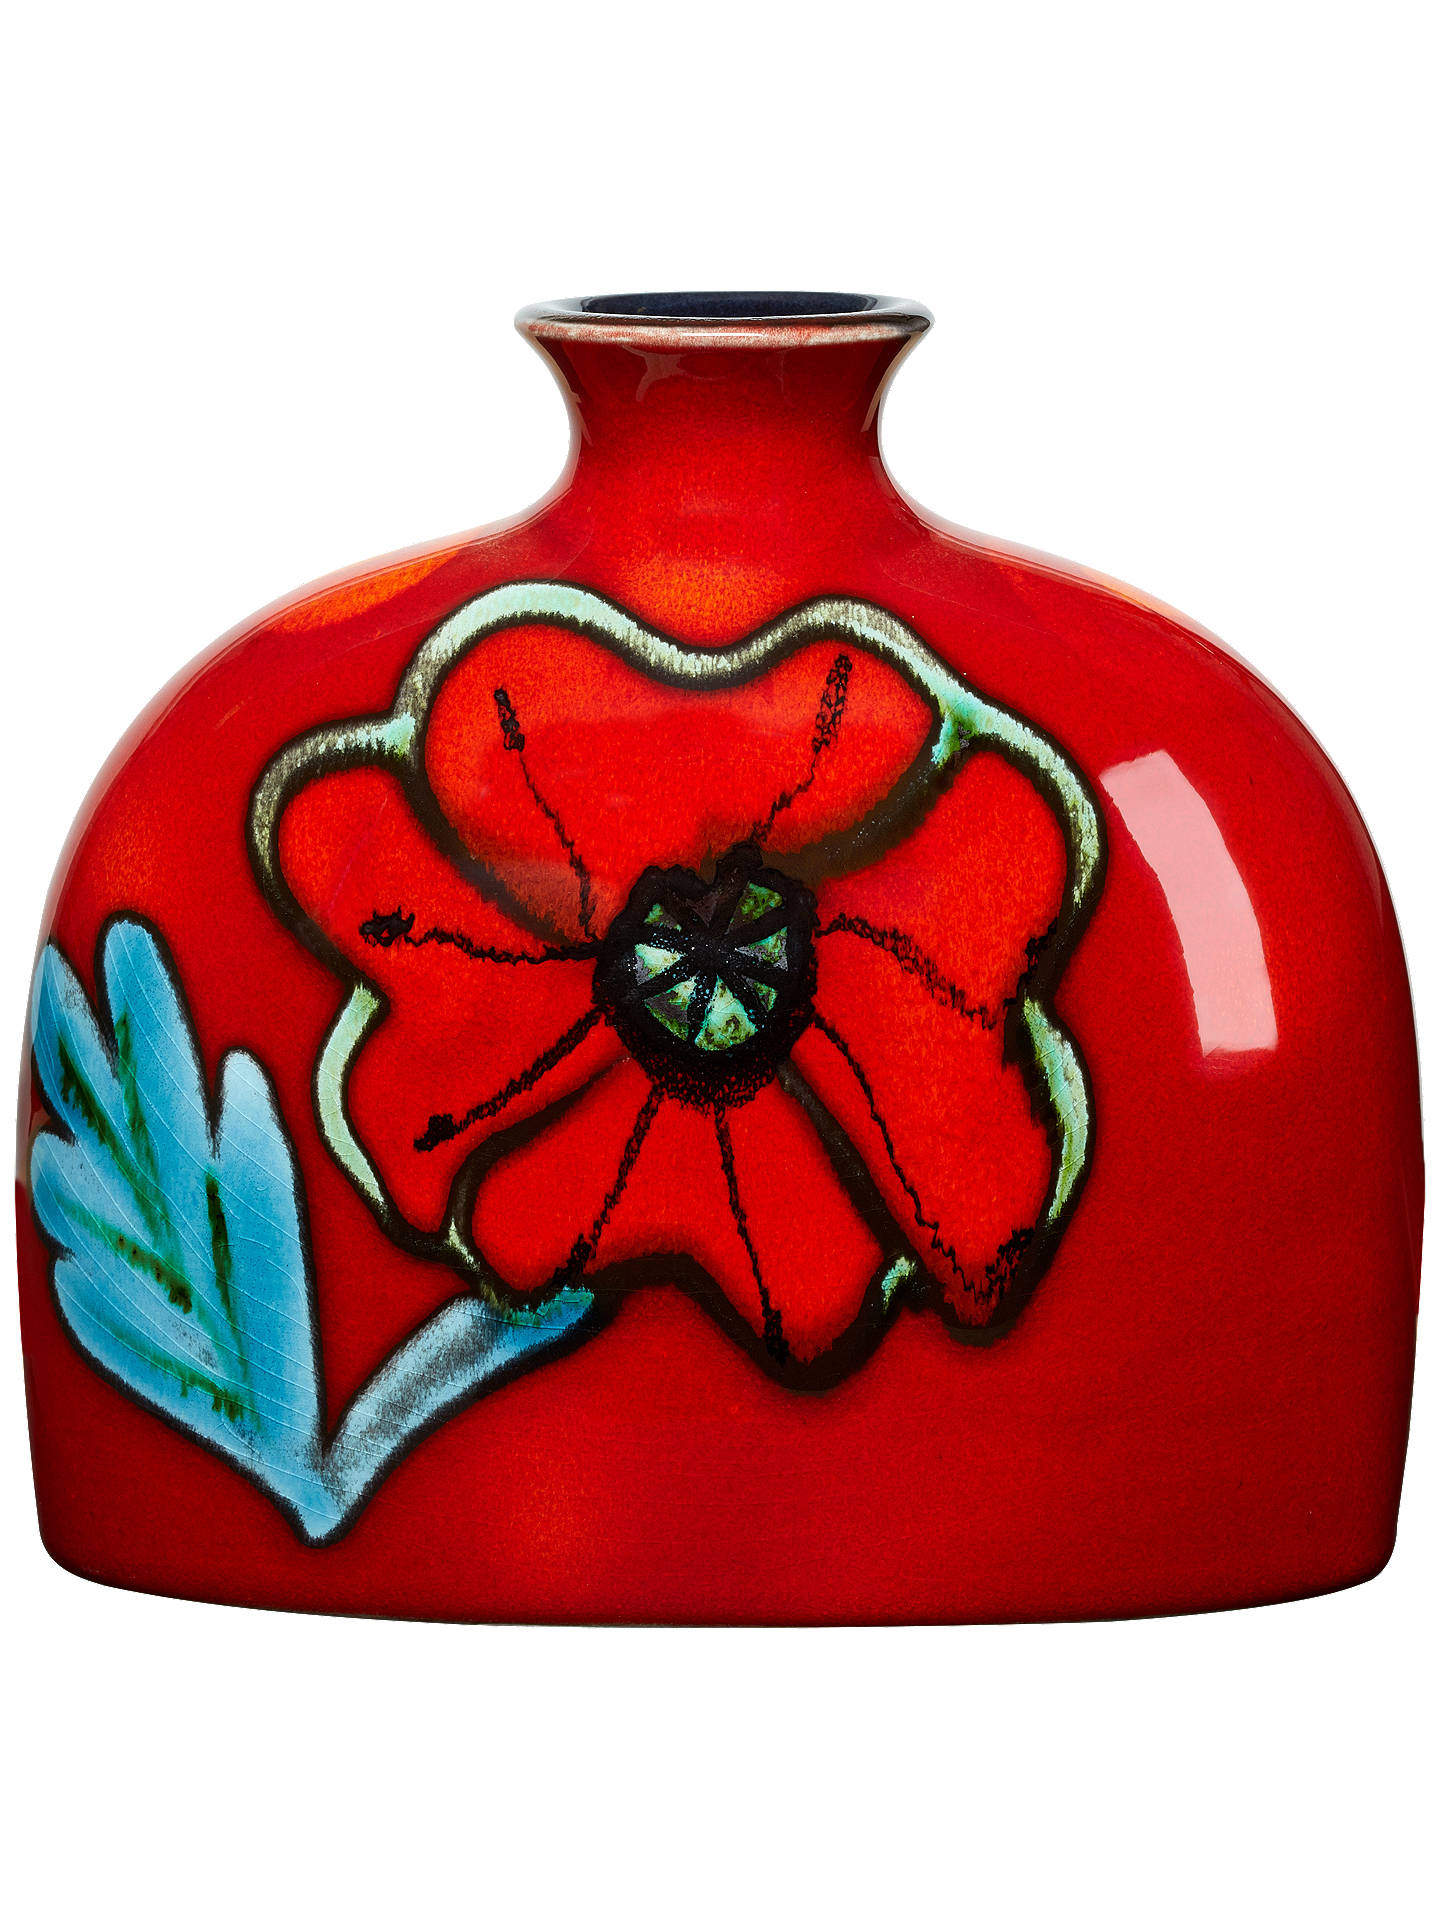 BuyPoole Pottery Poppyfield Bottle Vase, Small Online at johnlewis.com